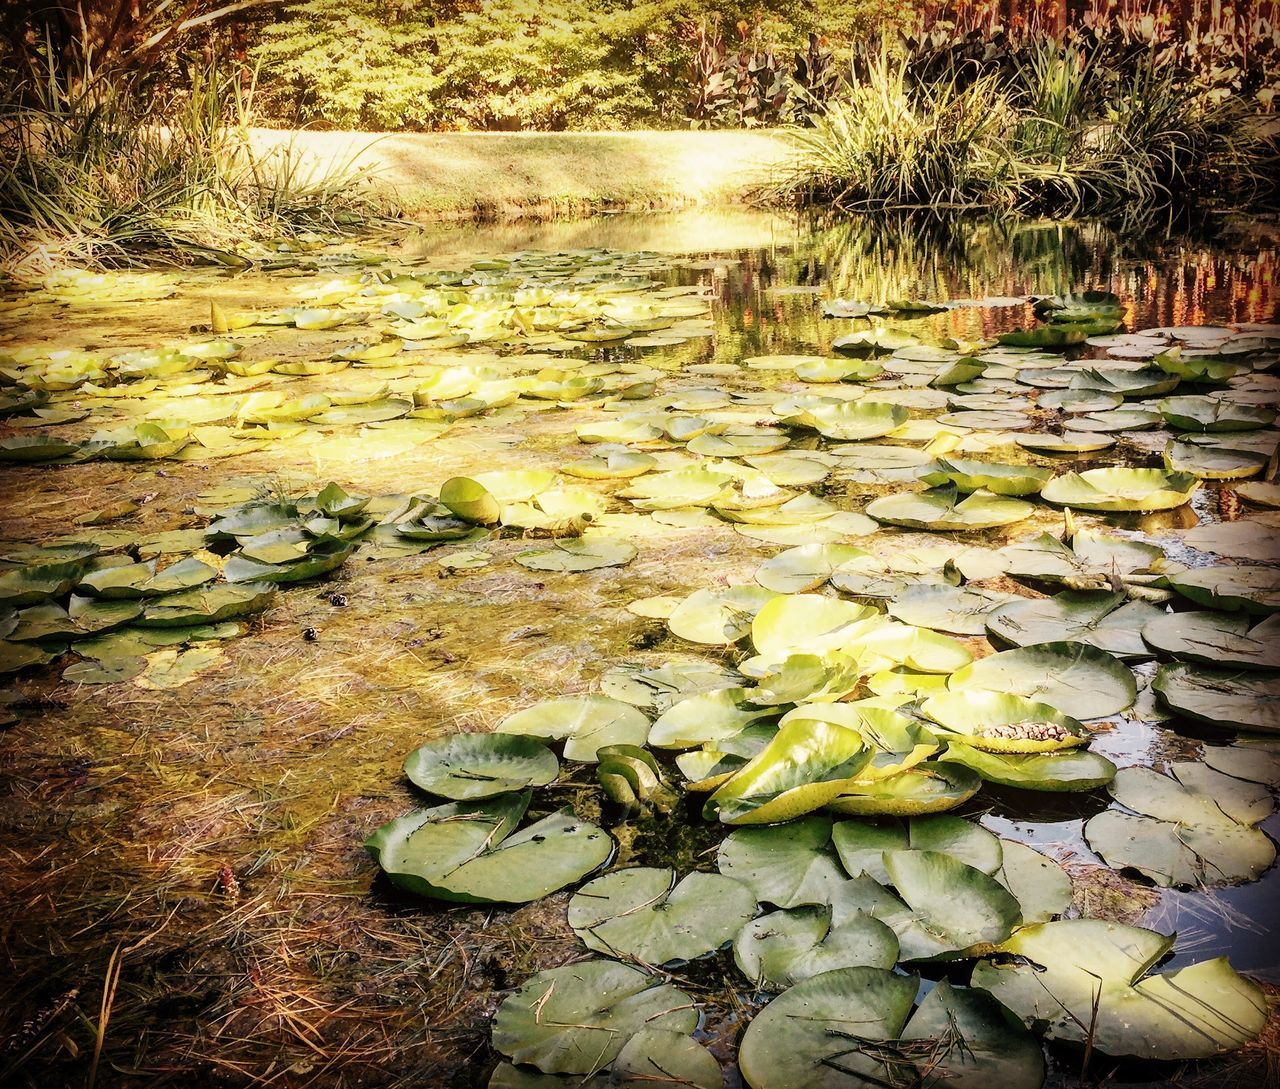 floating on water, water, water lily, pond, lily pad, leaf, nature, beauty in nature, reflection, tranquility, lotus water lily, growth, no people, floating, day, outdoors, green color, water plant, plant, waterfront, flower, fragility, freshness